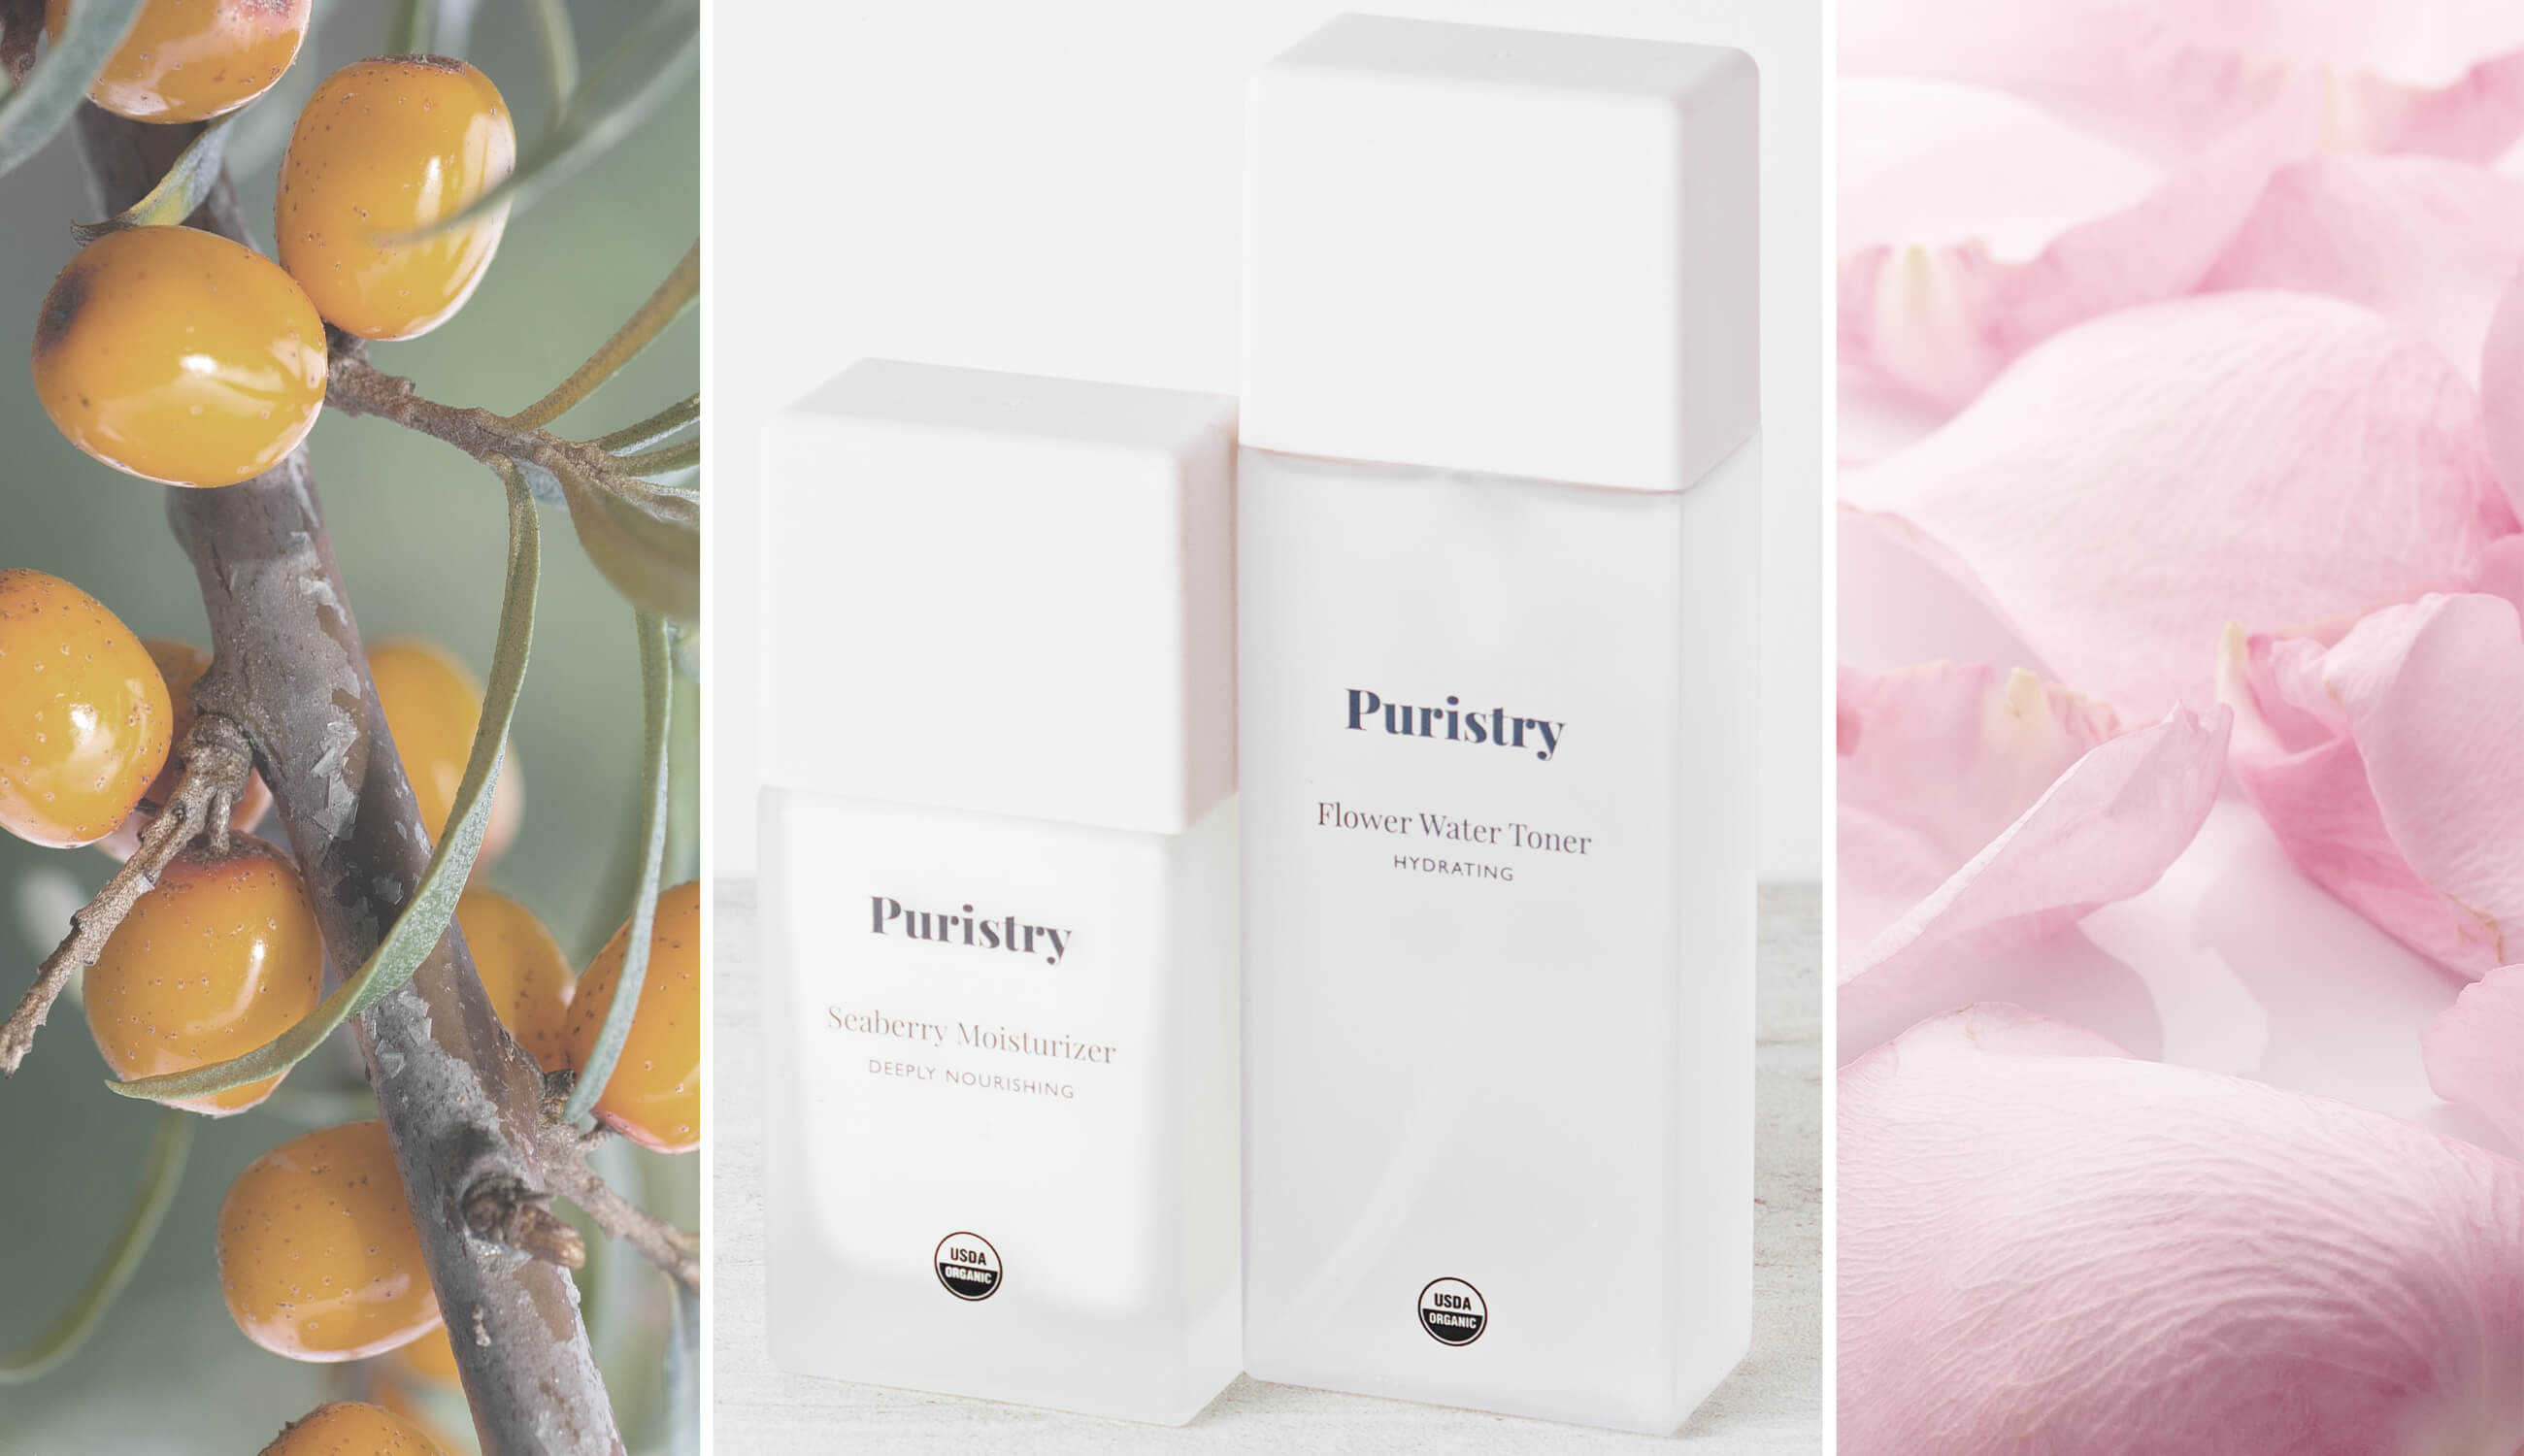 Puristry Products